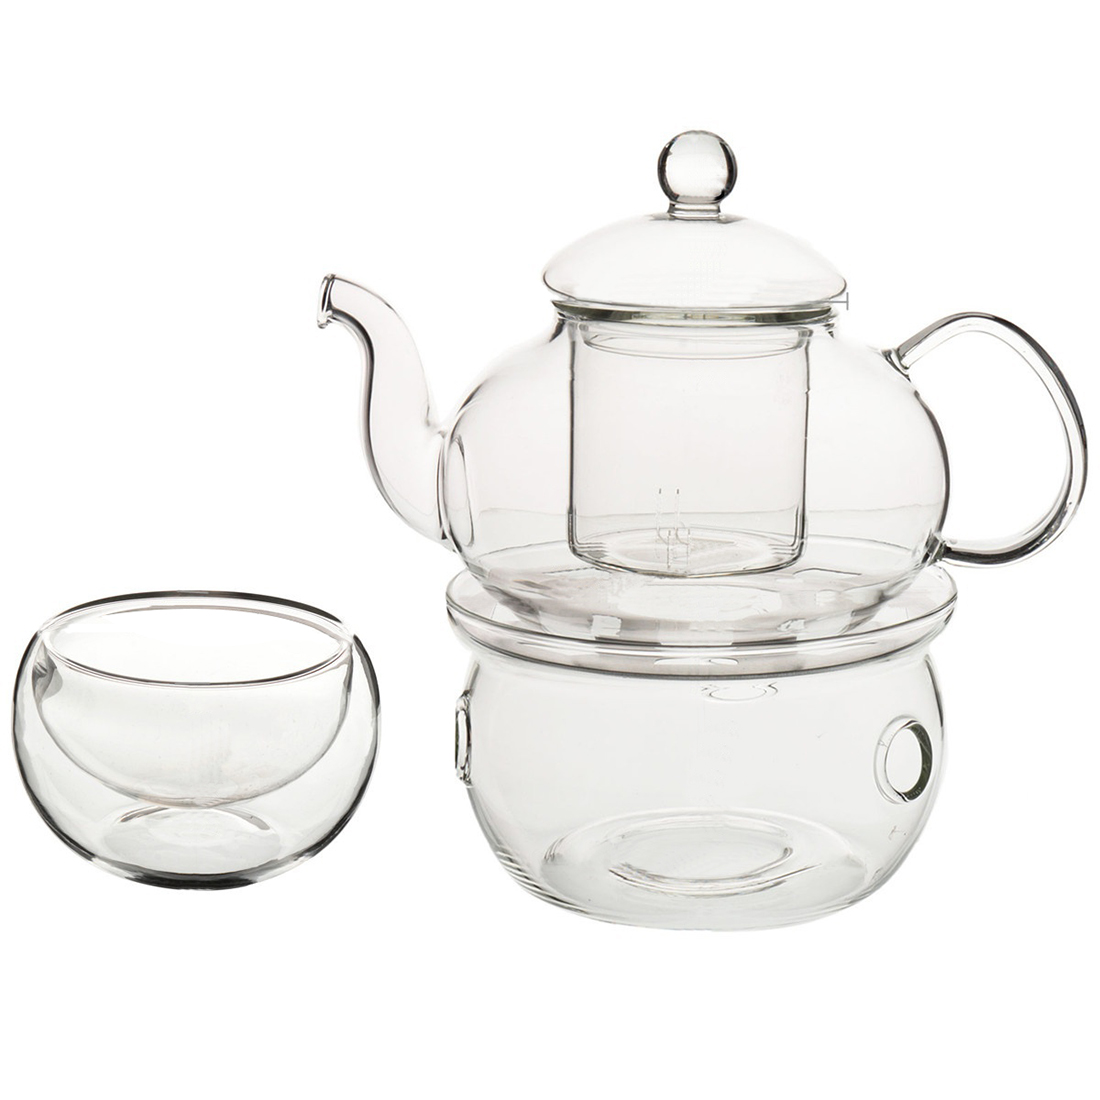 Set of Heat-resistant Glass Teapot with Strainer Flowers And Flower Tea Kung Fu Tea Gift 600mL ru tea sets new wholesale ceramic italics opening film ru kung fu tea gift box gift